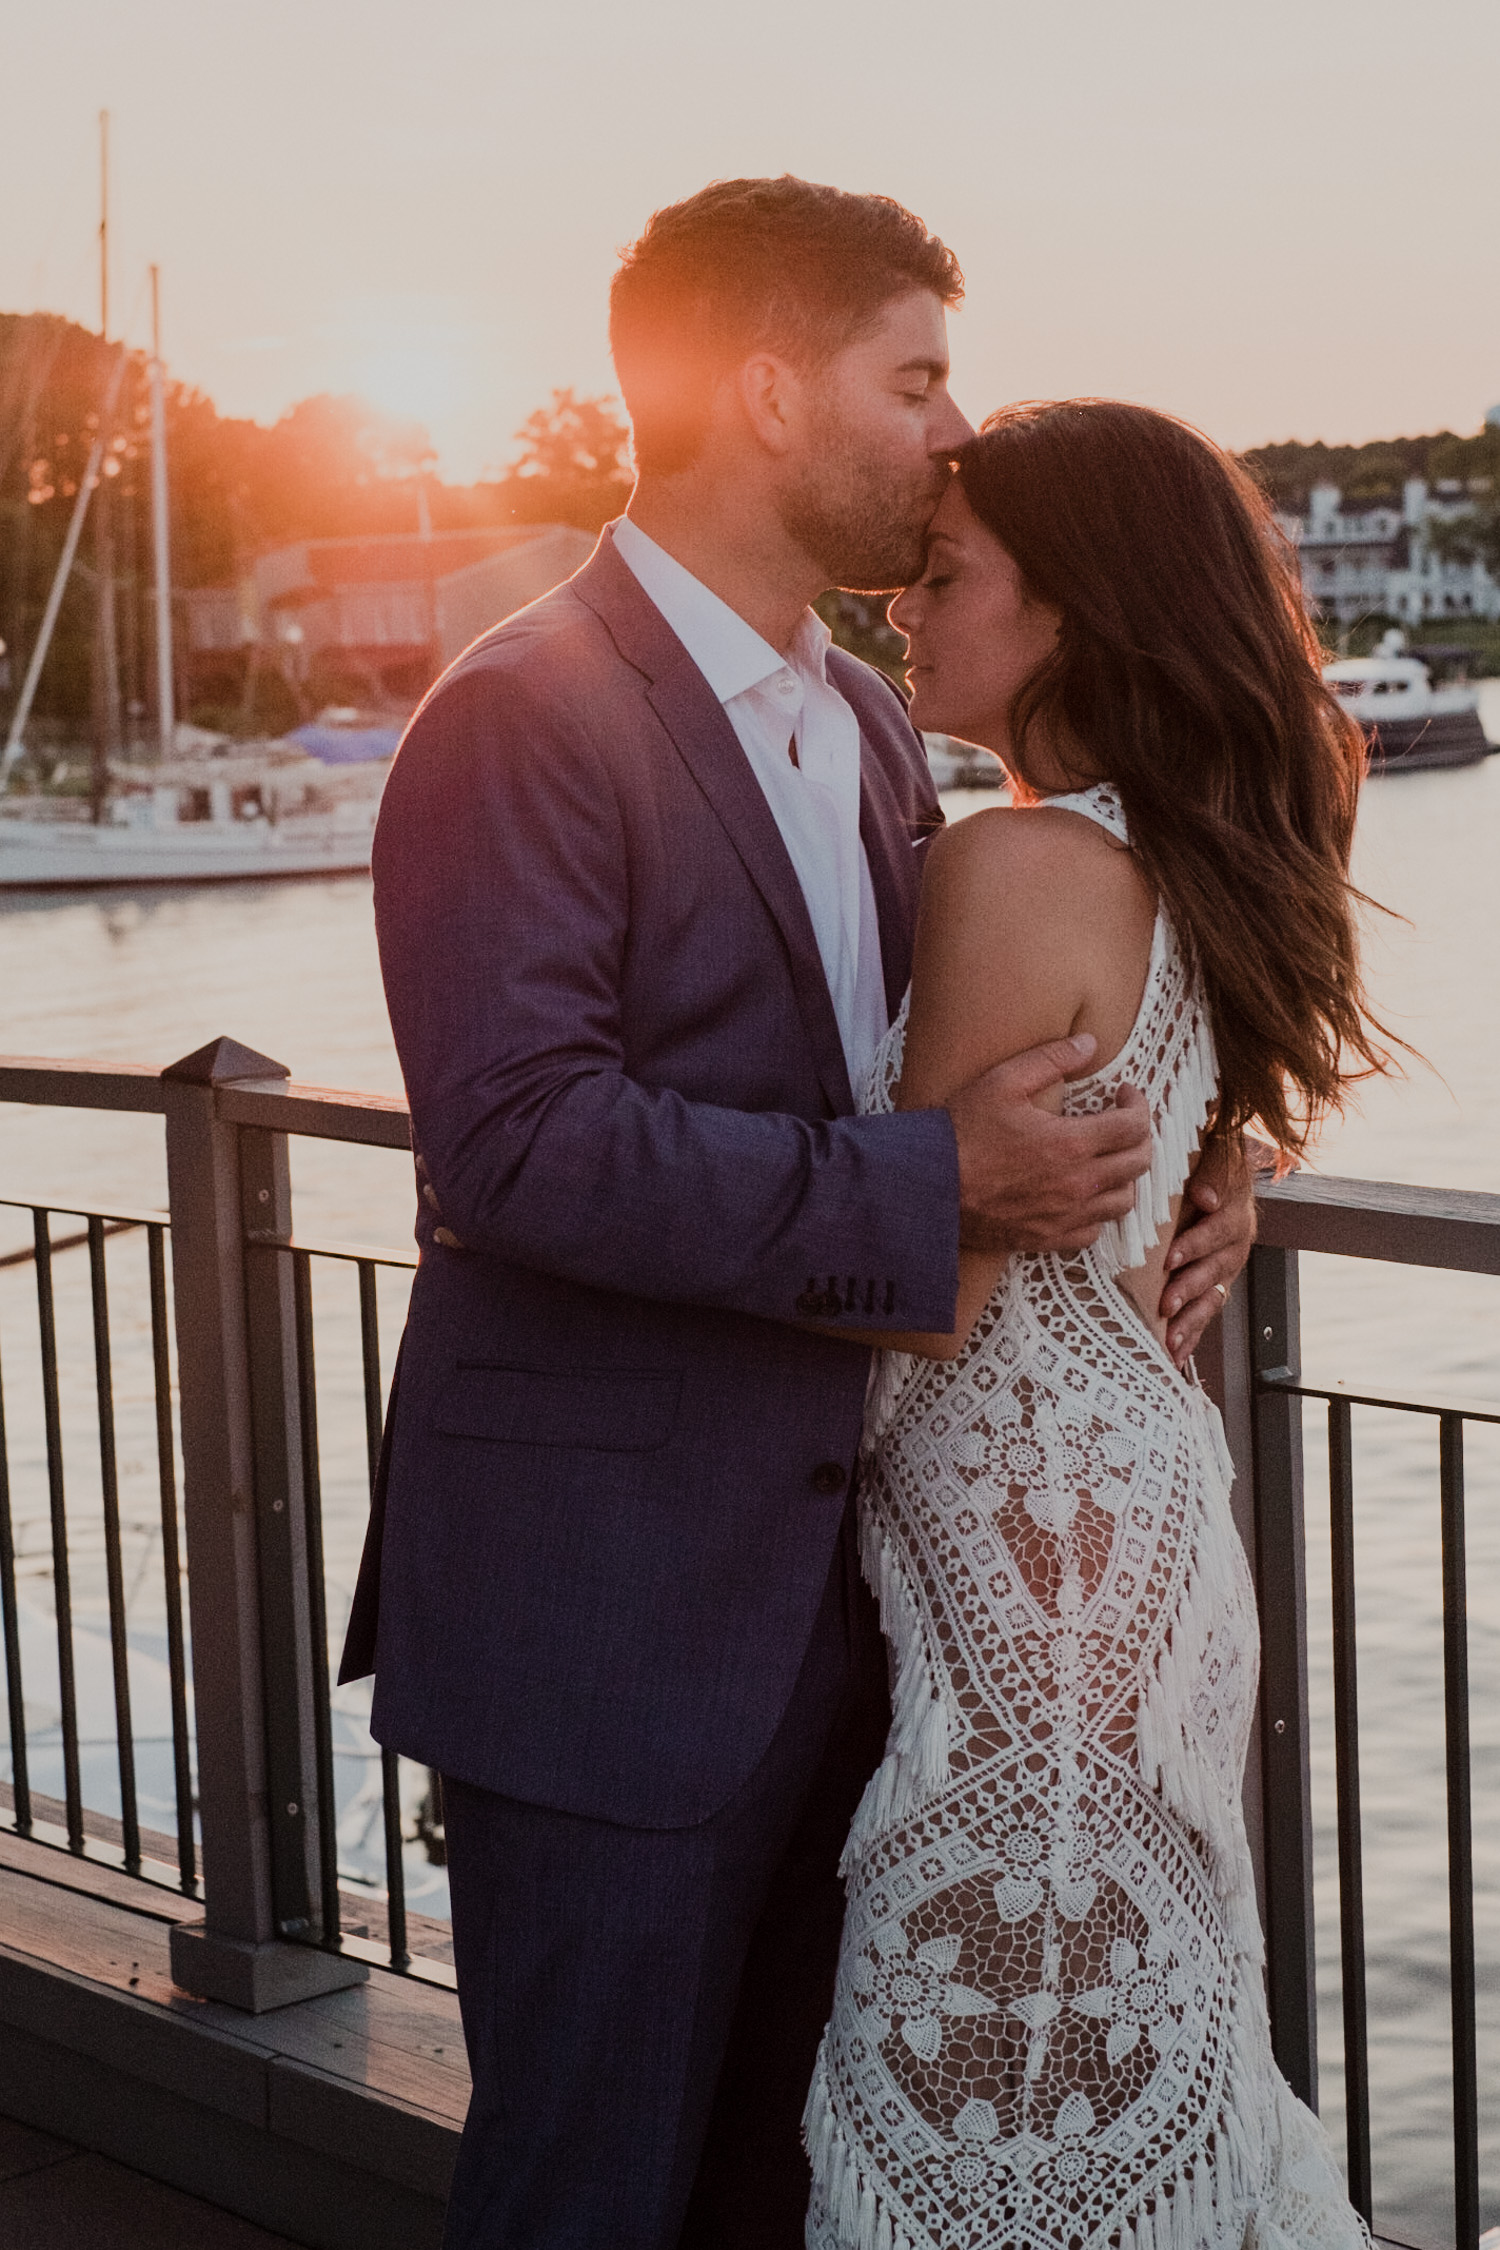 groom kisses bride's forehead during sunset portraits